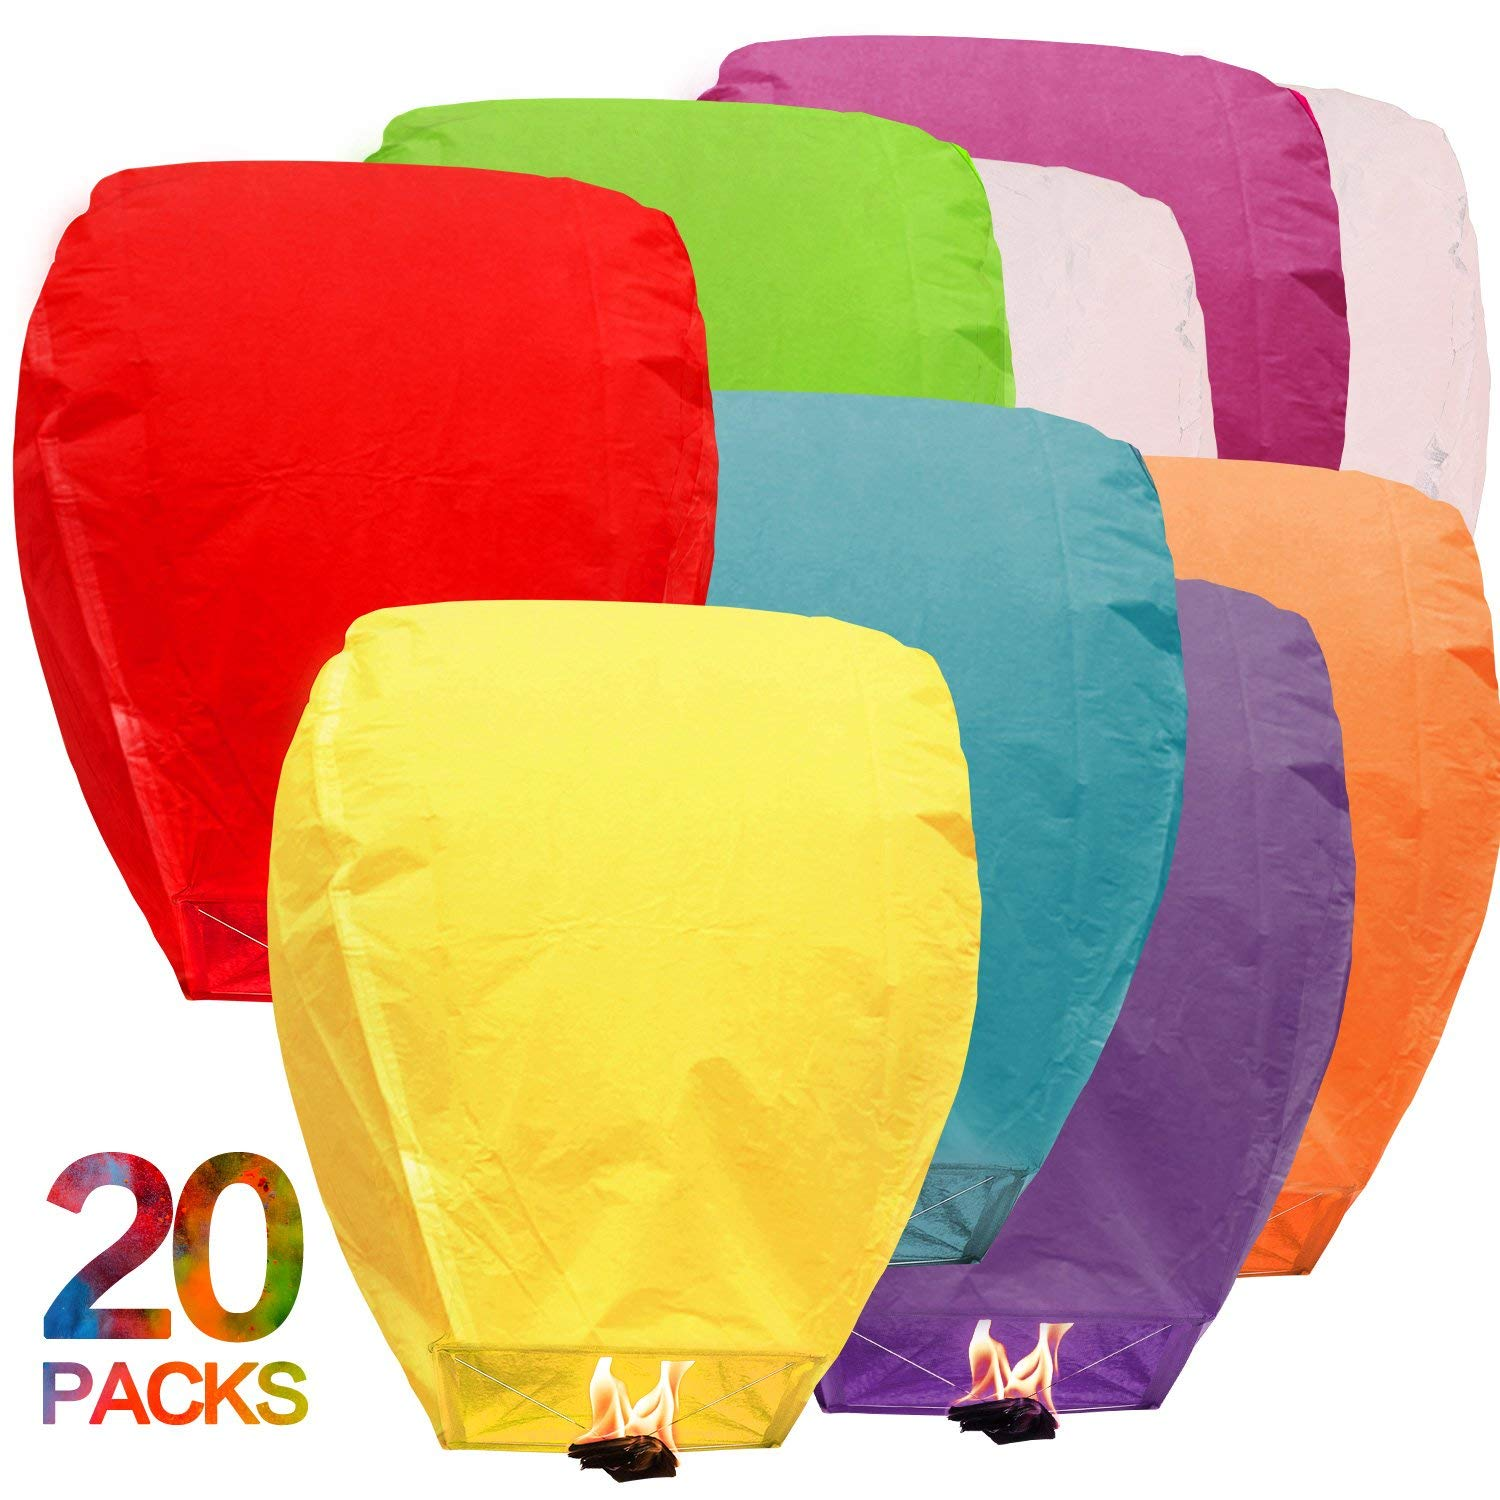 Maylai 20Pcs Sky Lanterns Flying Paper Lanterns Chinese Wish Lanterns for Birthday Wedding Party Anniversary Chinese Lanterns Assorted Colors 100% Biodegradable Environmentally Friendly!